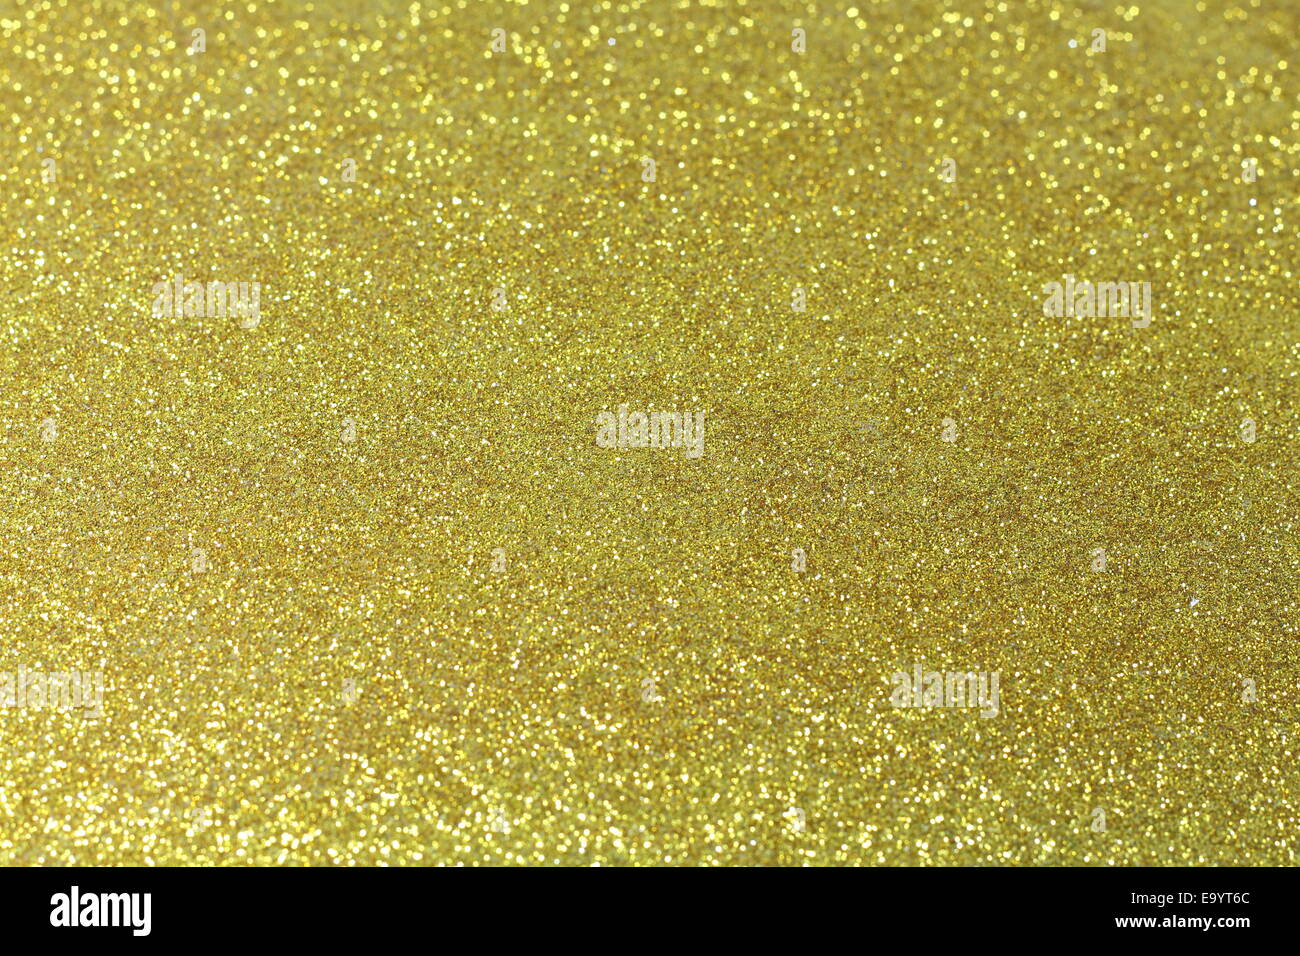 Background image of gold glitter/sparkle - Stock Image